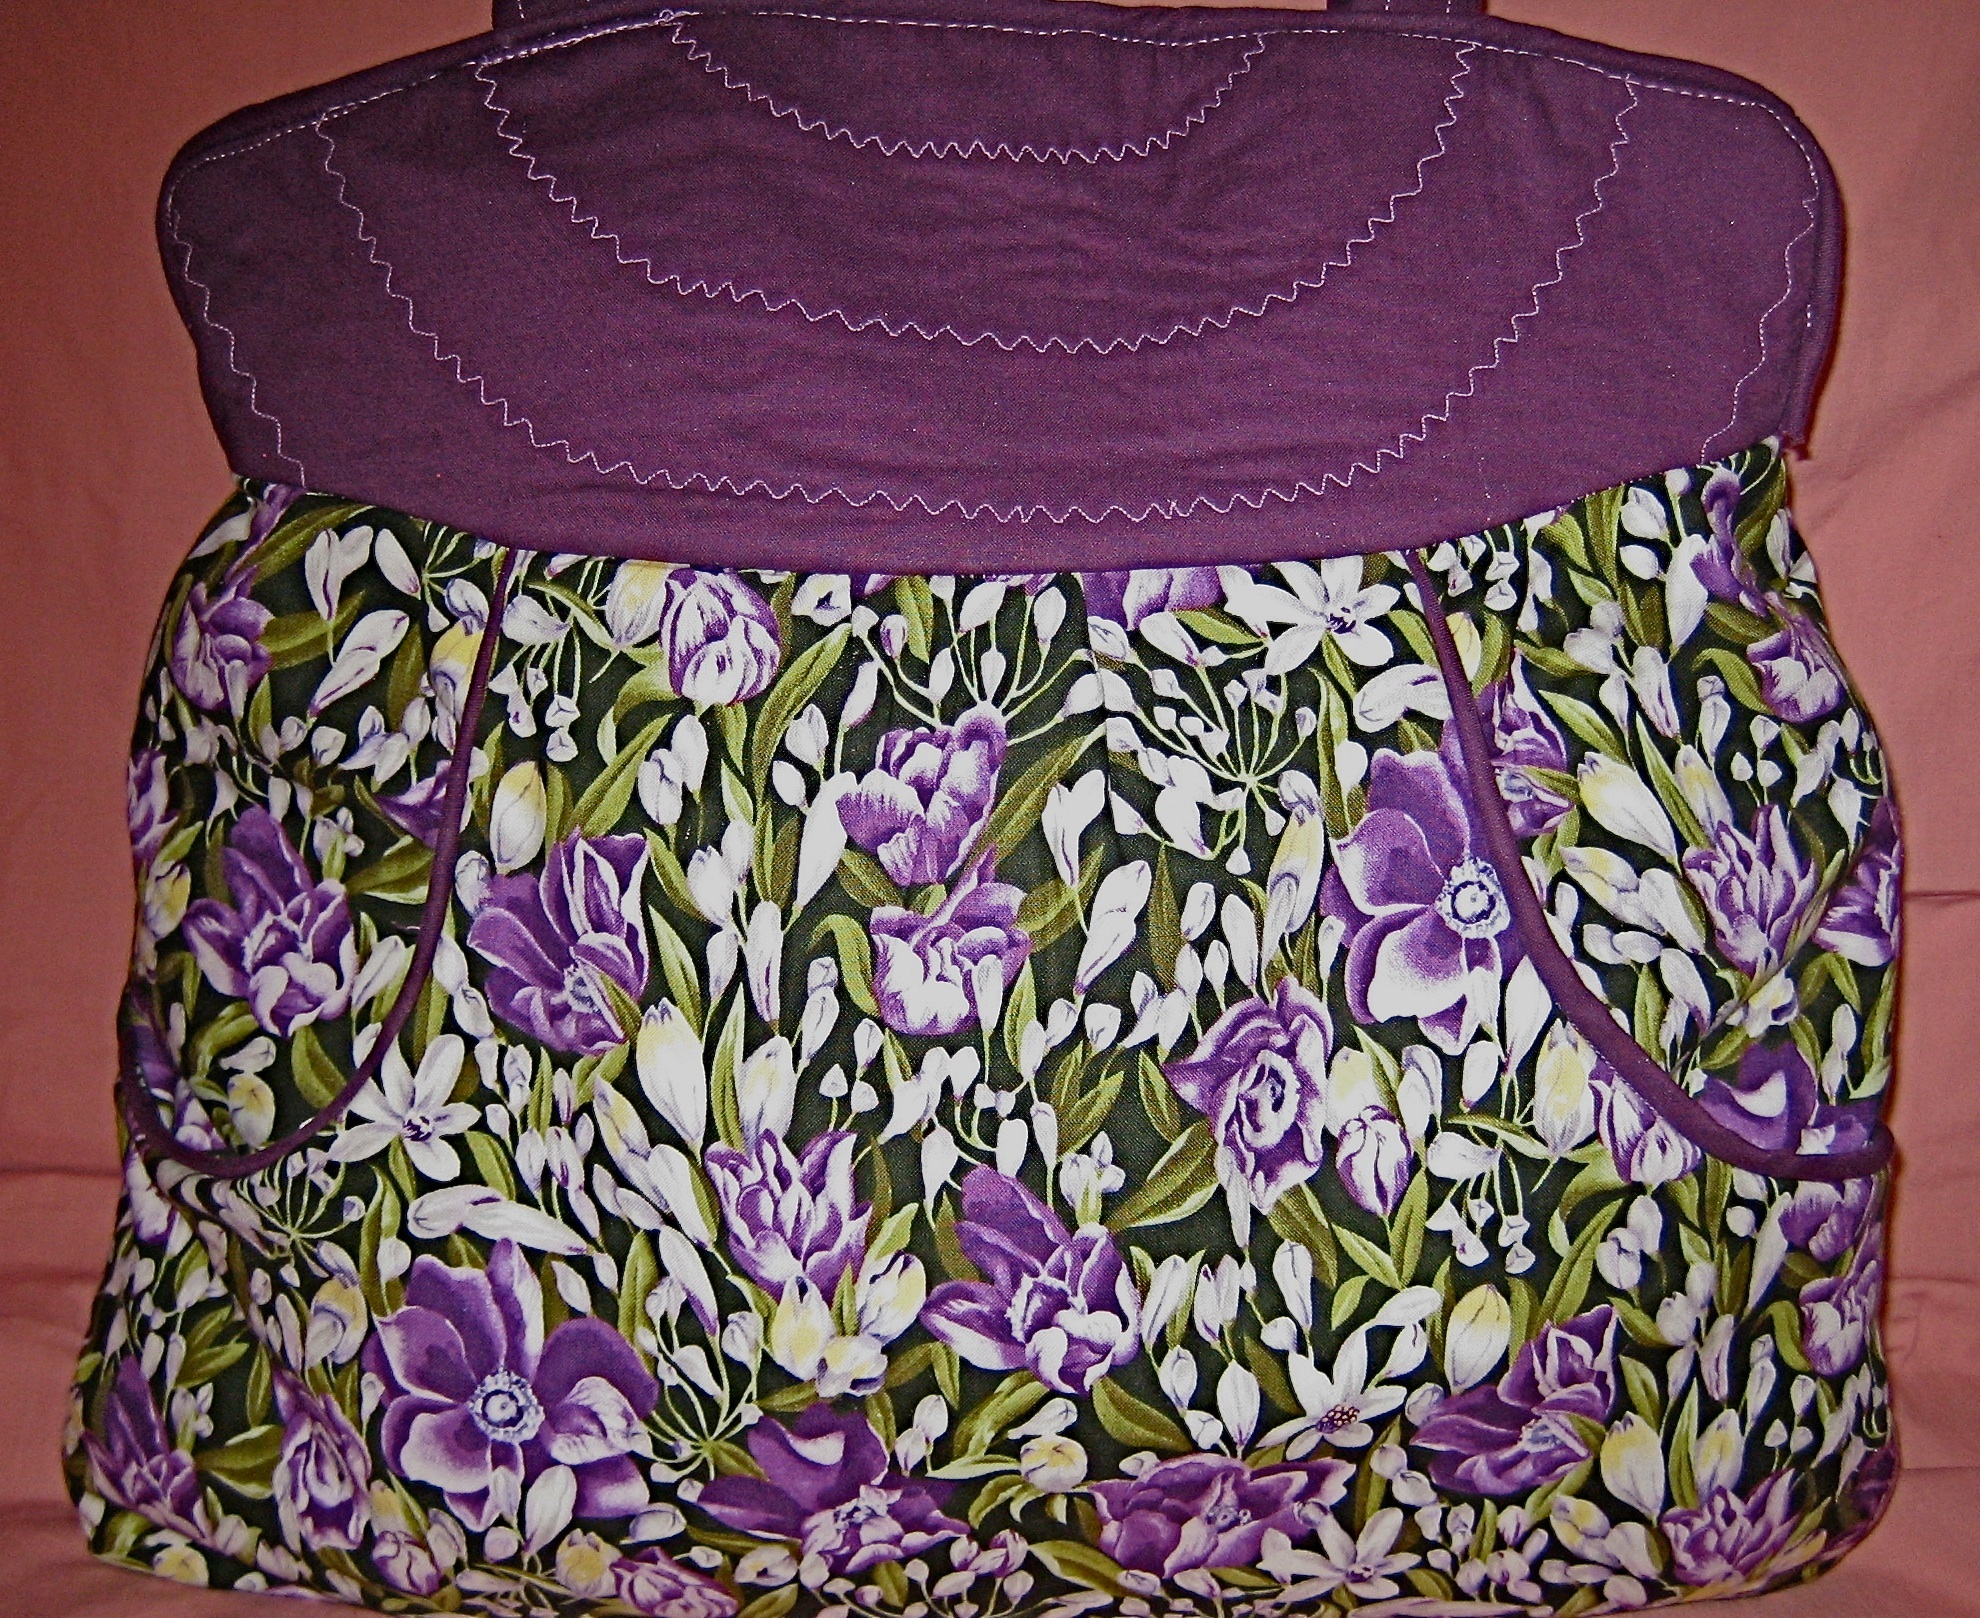 Concealed Weapons Purse Tutorial Quiltingboard Forums